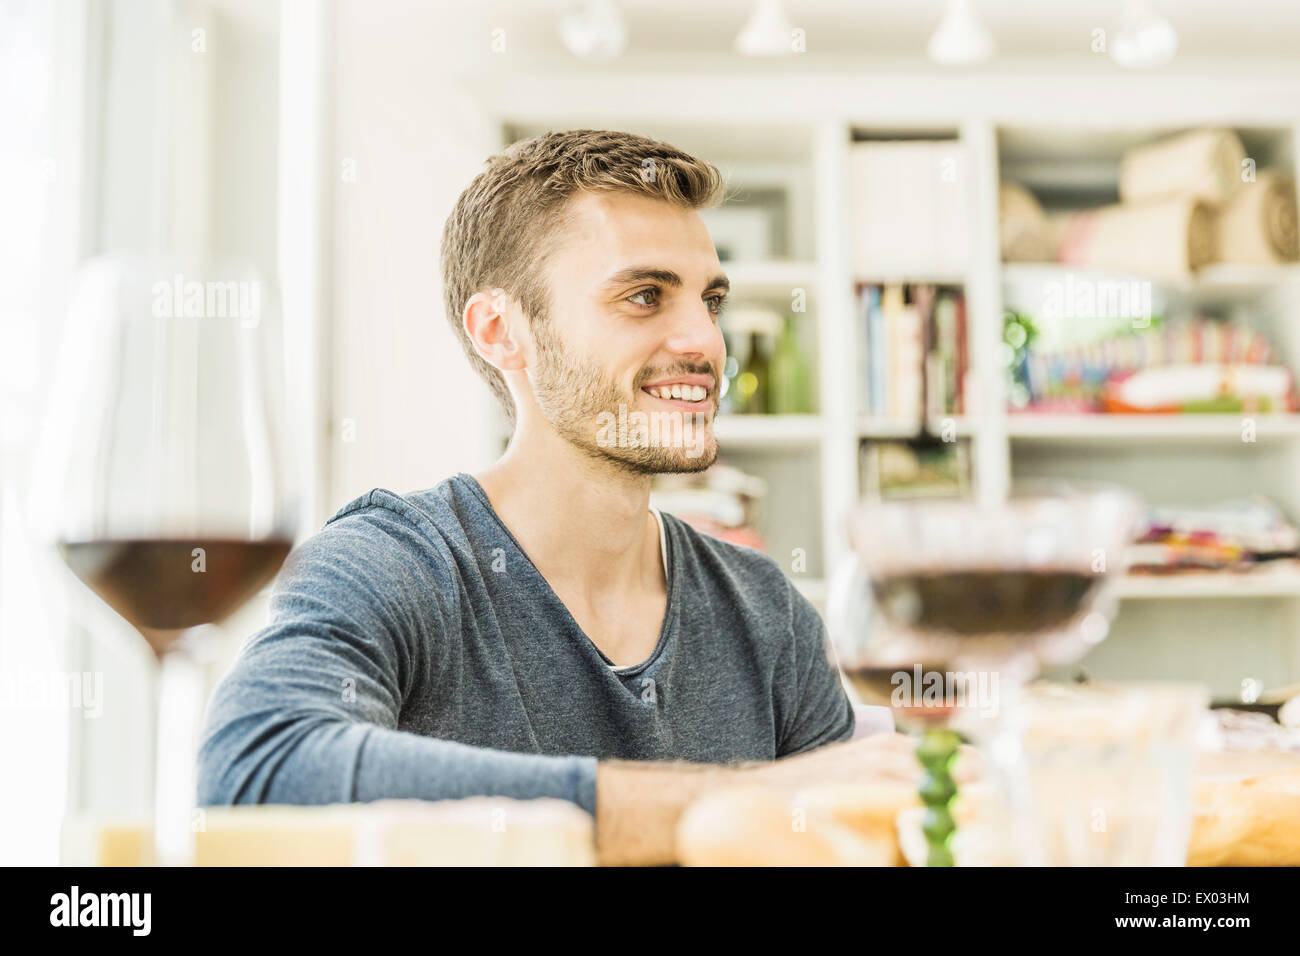 Young man drinking wine at table in dining room - Stock Image